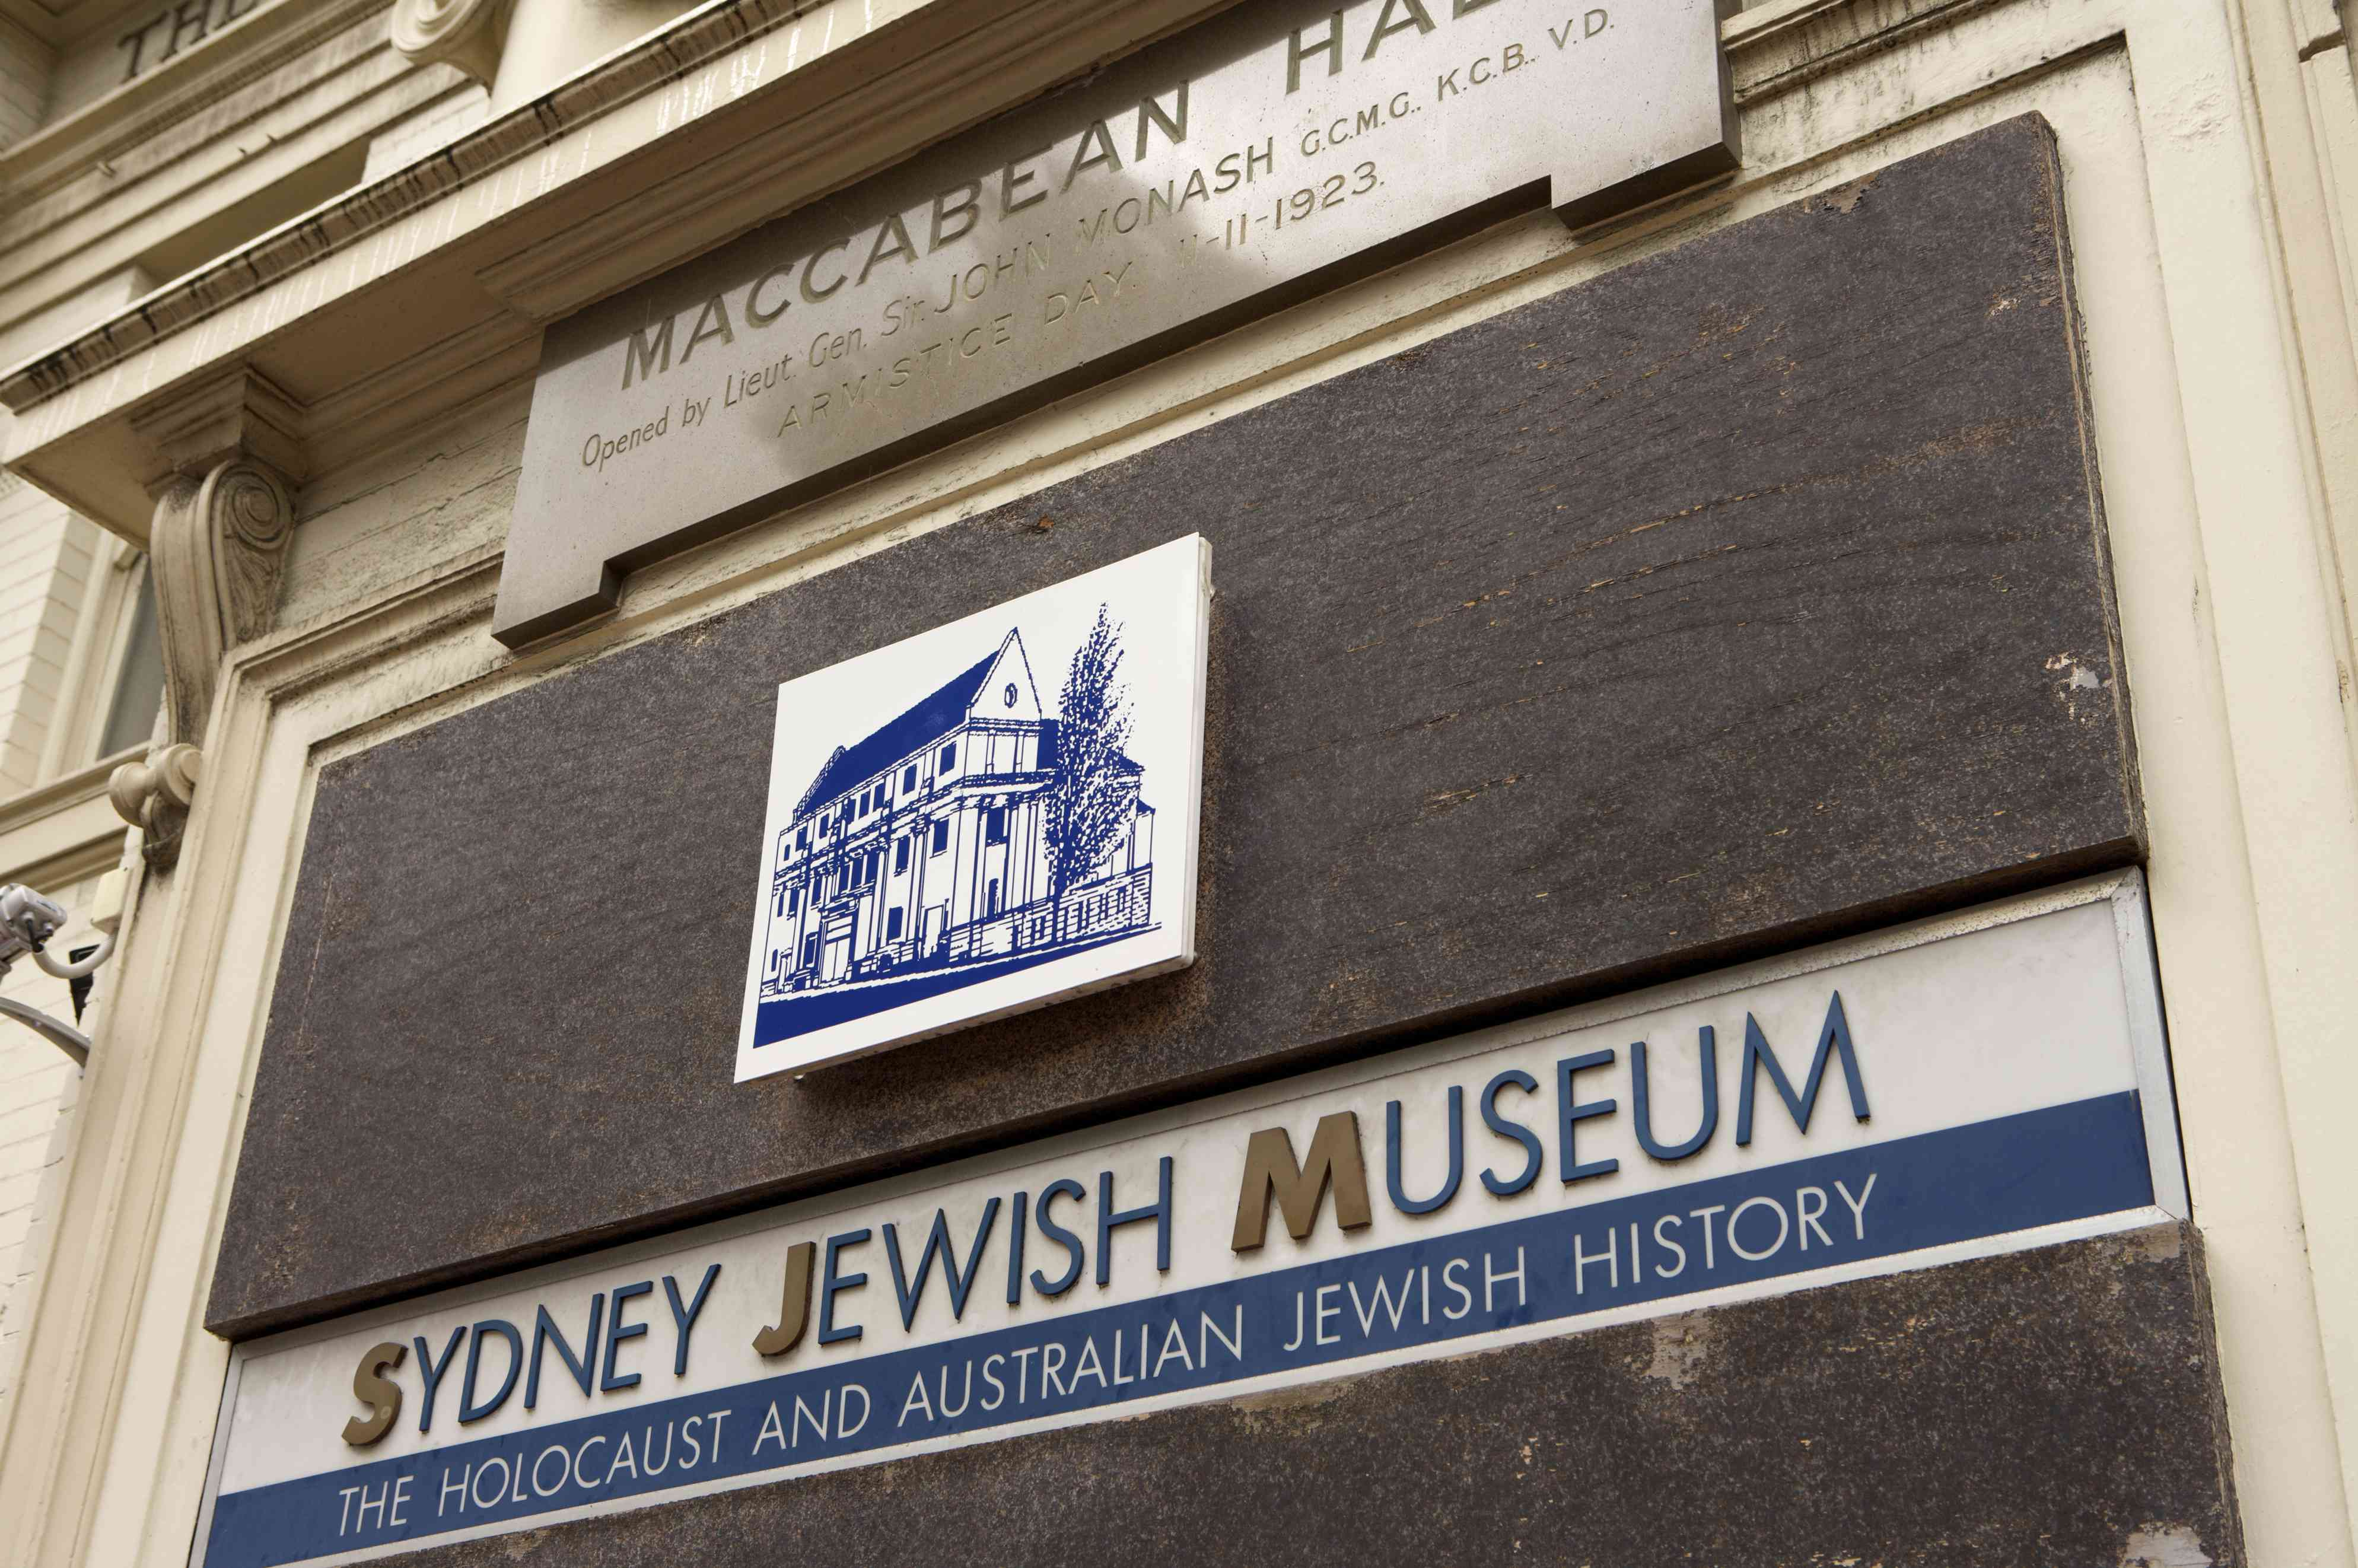 Entry sign at Sydney Jewish Museum